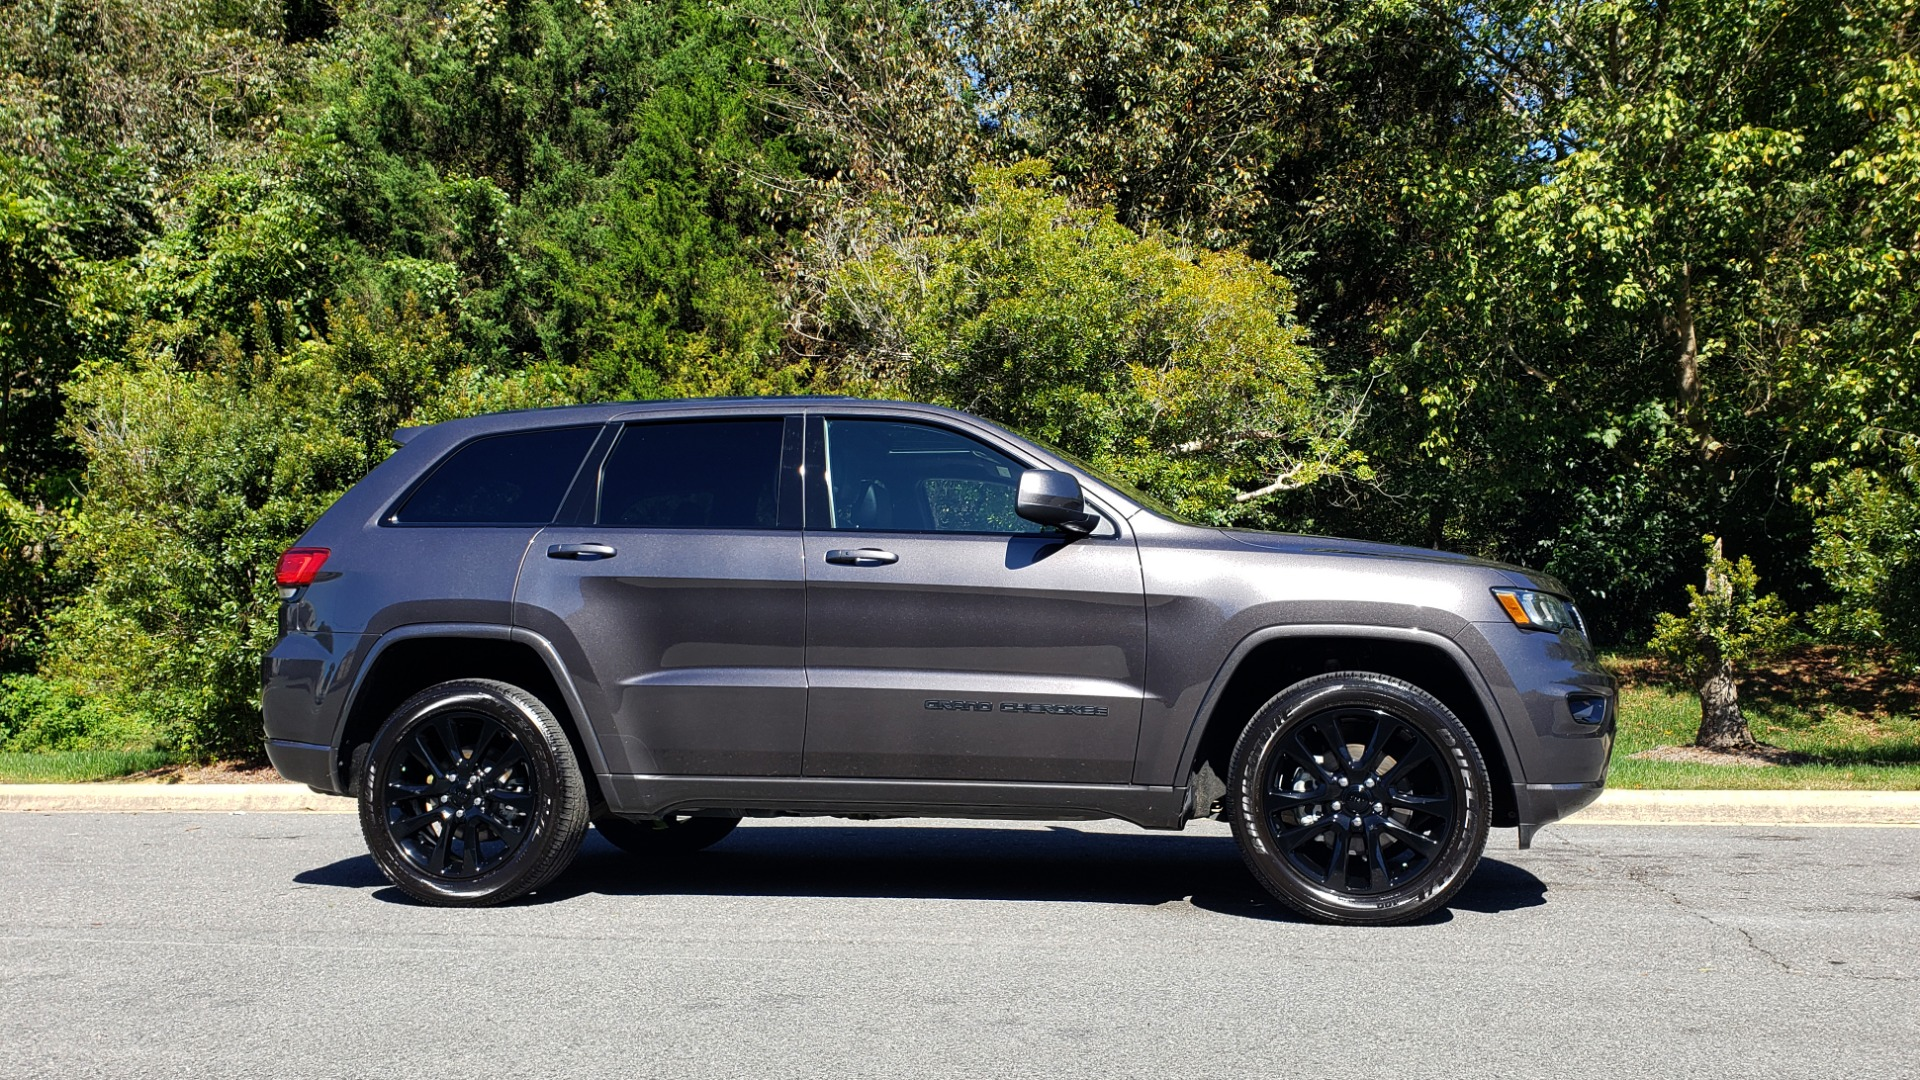 Used 2019 Jeep GRAND CHEROKEE ALTITUDE 4X4 / NAV / WIFI / SUNROOF / REARVIEW for sale $34,995 at Formula Imports in Charlotte NC 28227 5